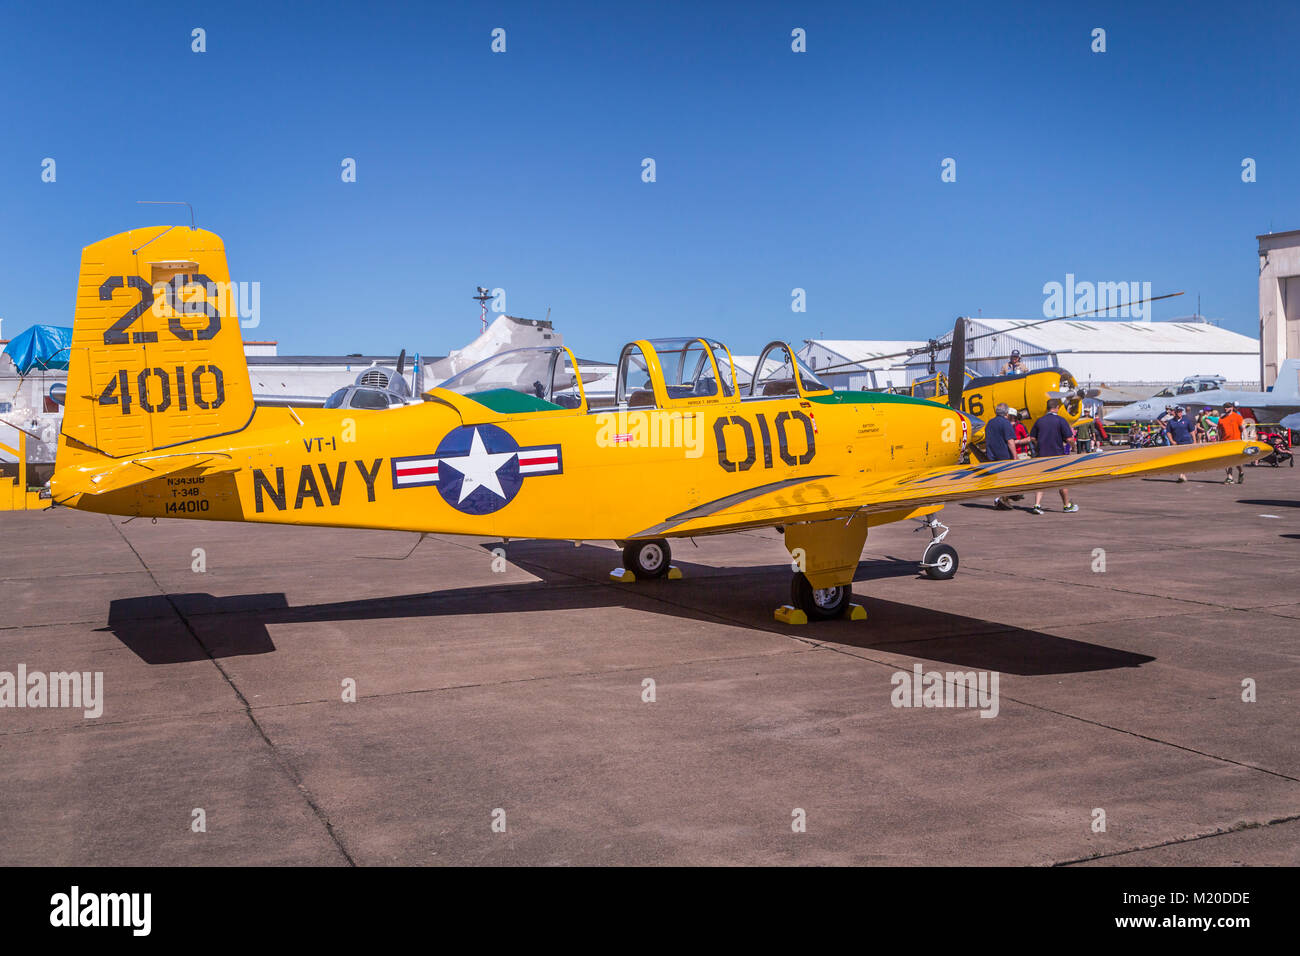 A Beechcraft T-34B Mentor trainer in static ground display at the 2017 Airshow in Duluth, Minnesota, USA. - Stock Image